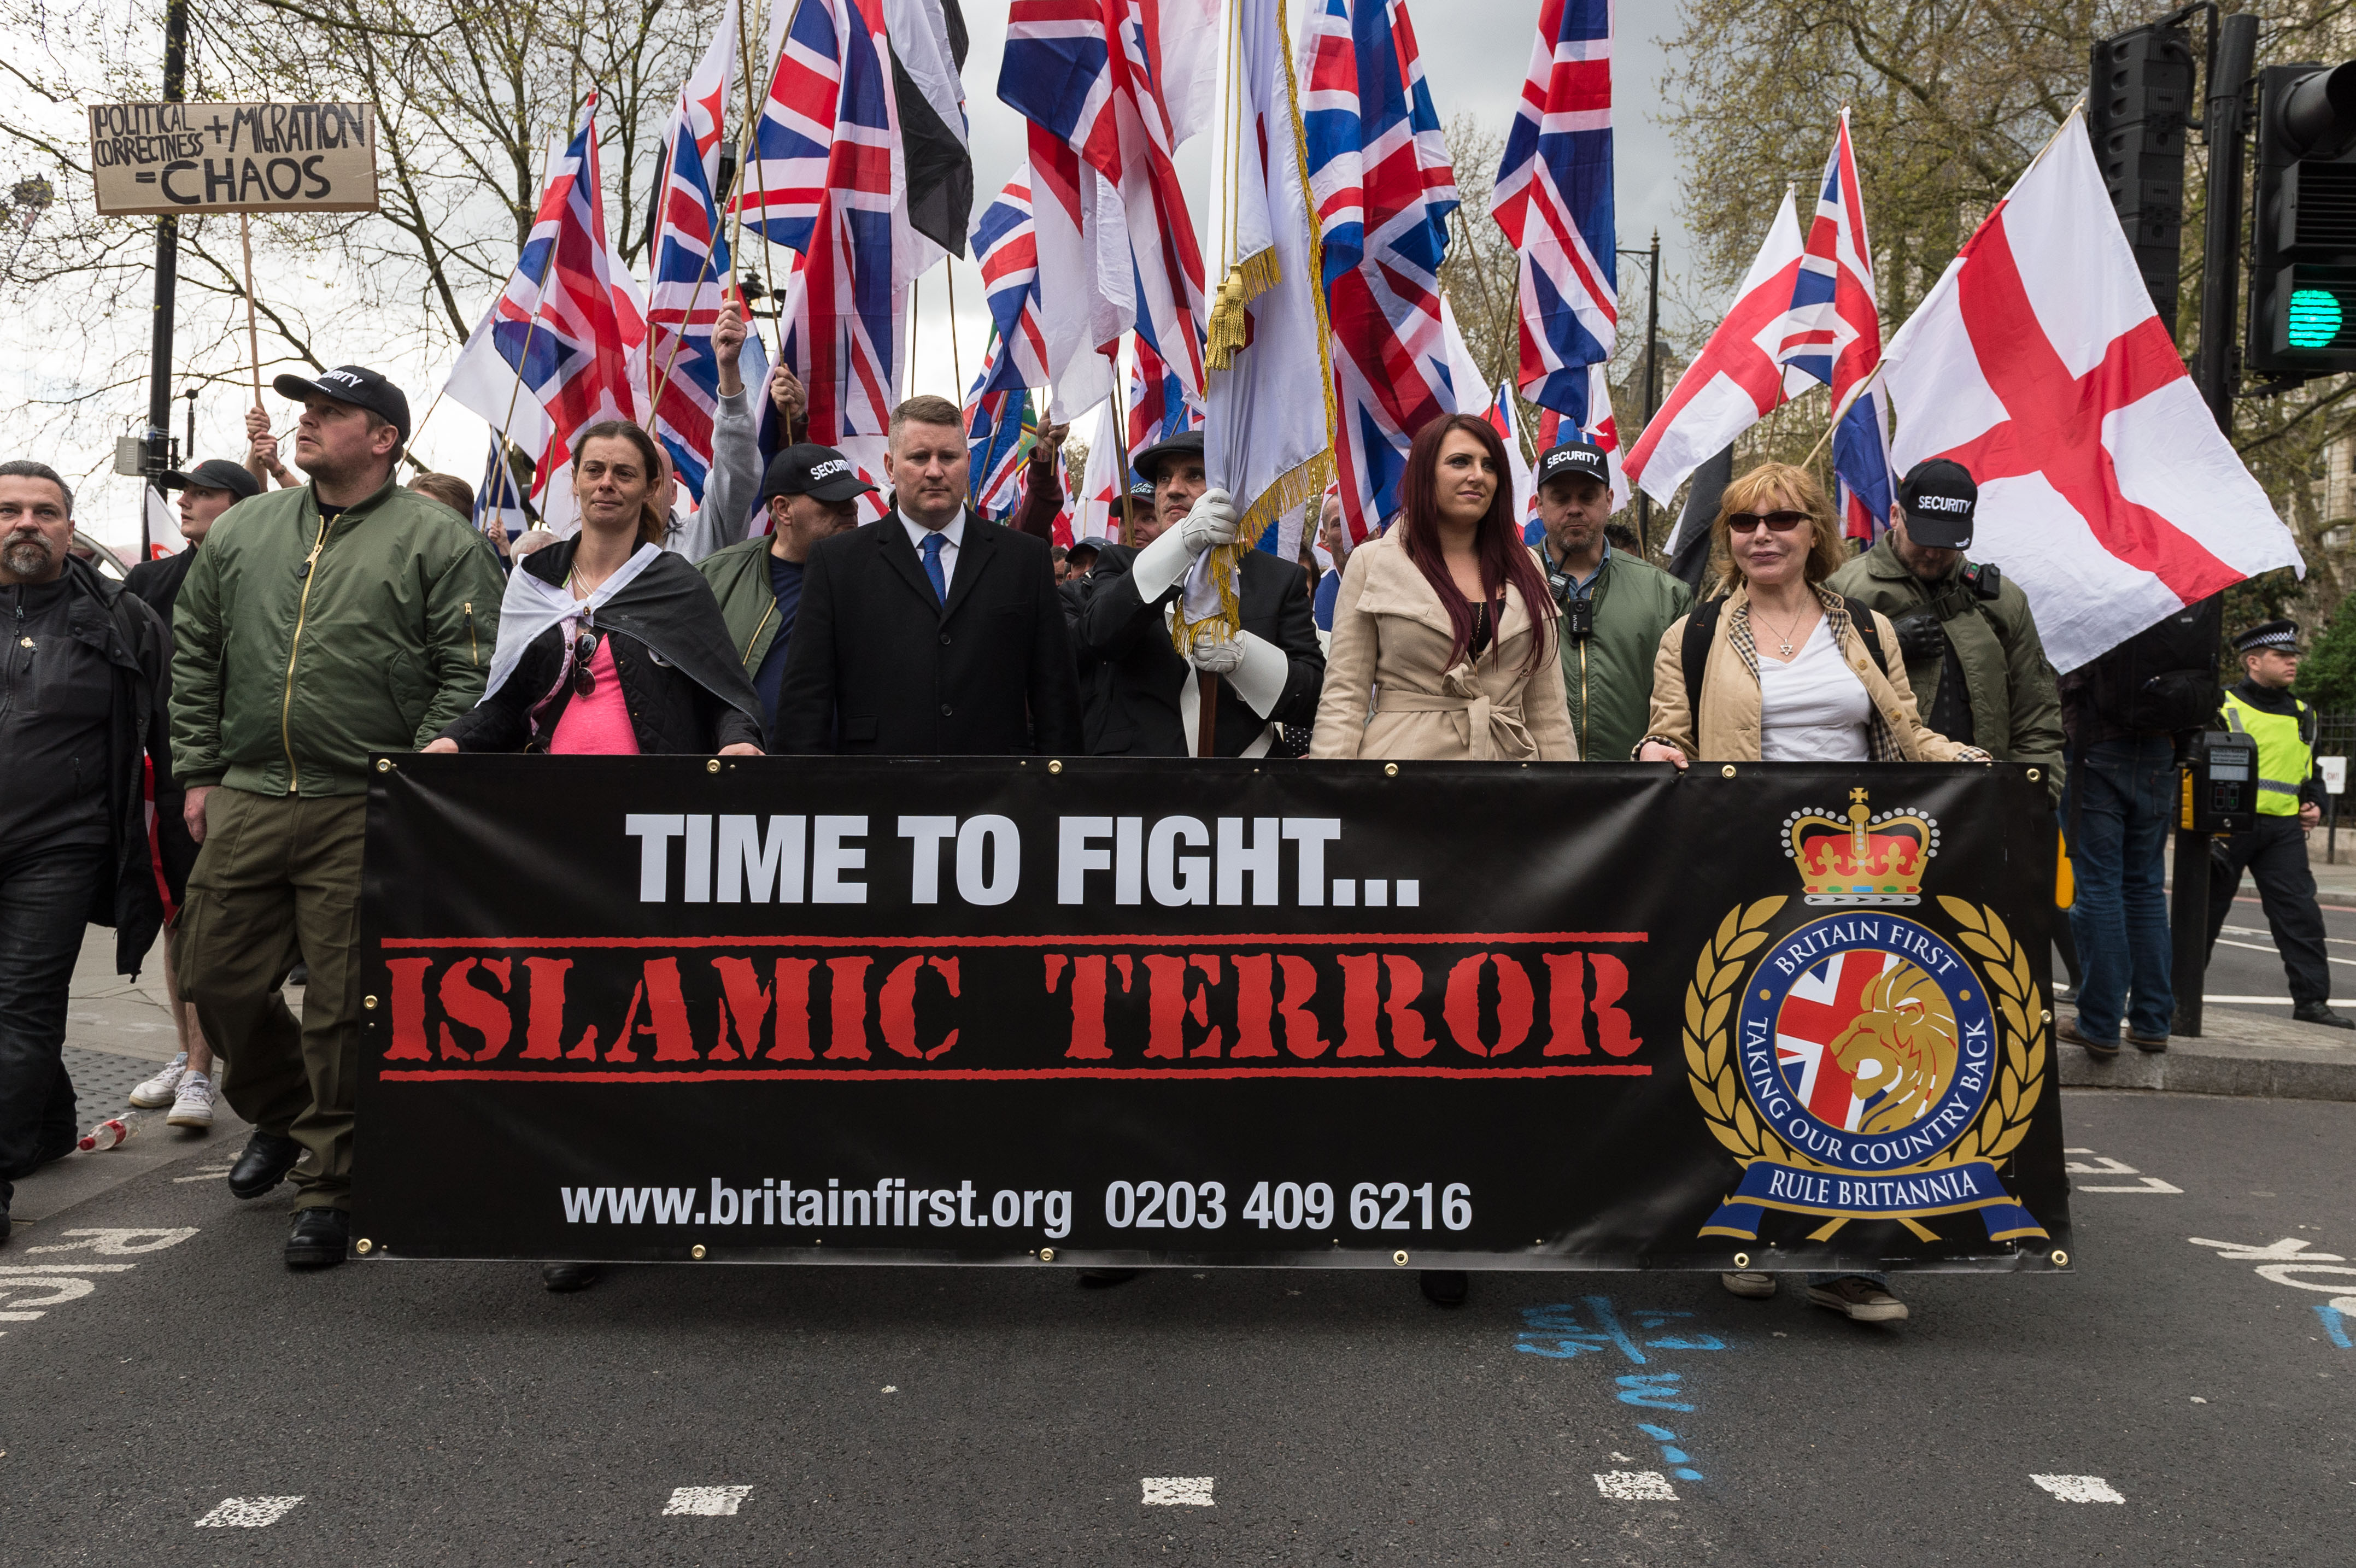 Britain First leaders Jayda Fransen (2R) and Paul Golding (3L) lead March Against Terrorism on April 01, 2017 in London, England.